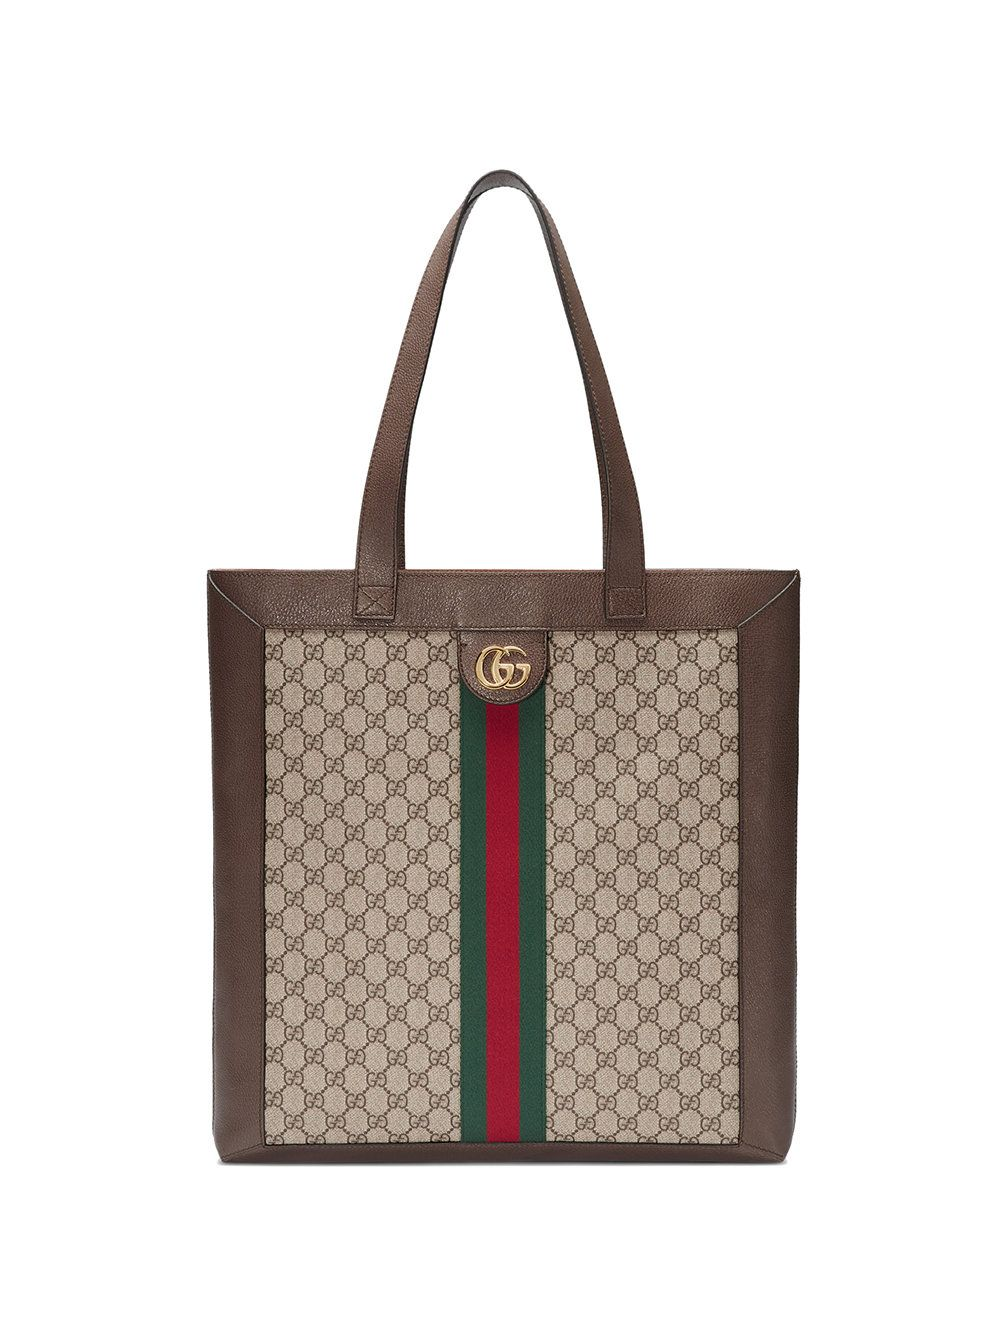 eb8f21b5378 GUCCI BROWN.  gucci  bags  hand bags  suede  tote  lining